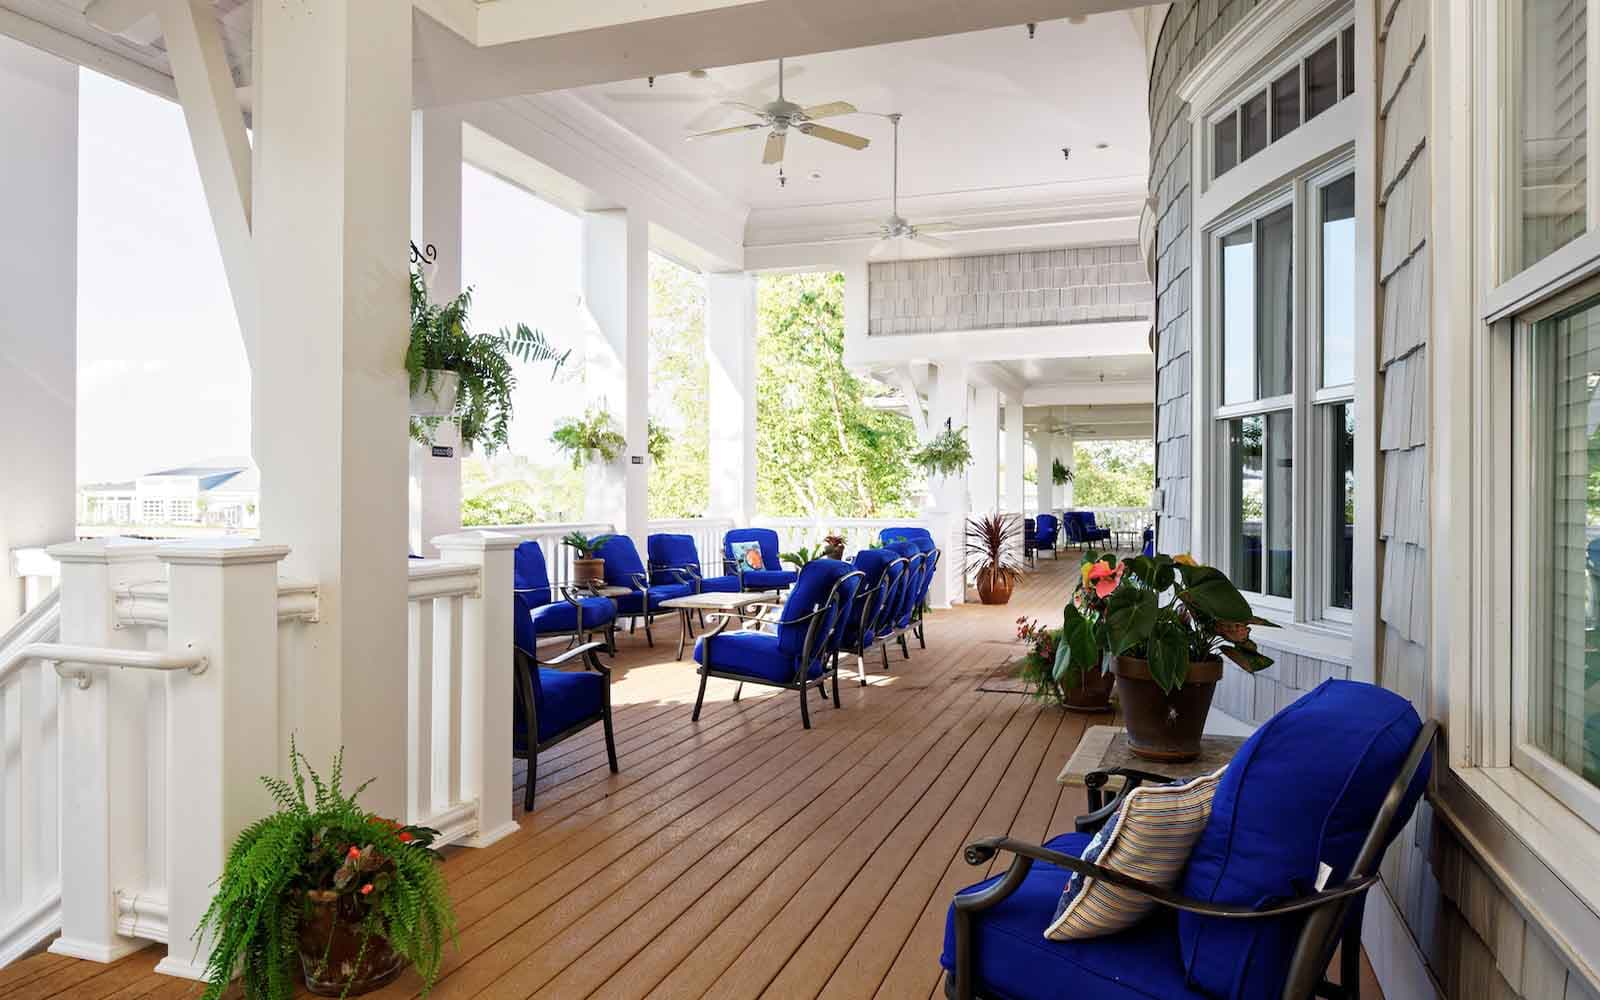 Outdoor seating for relaxation at the Heritage Shores clubhouse in Bridgeville DE